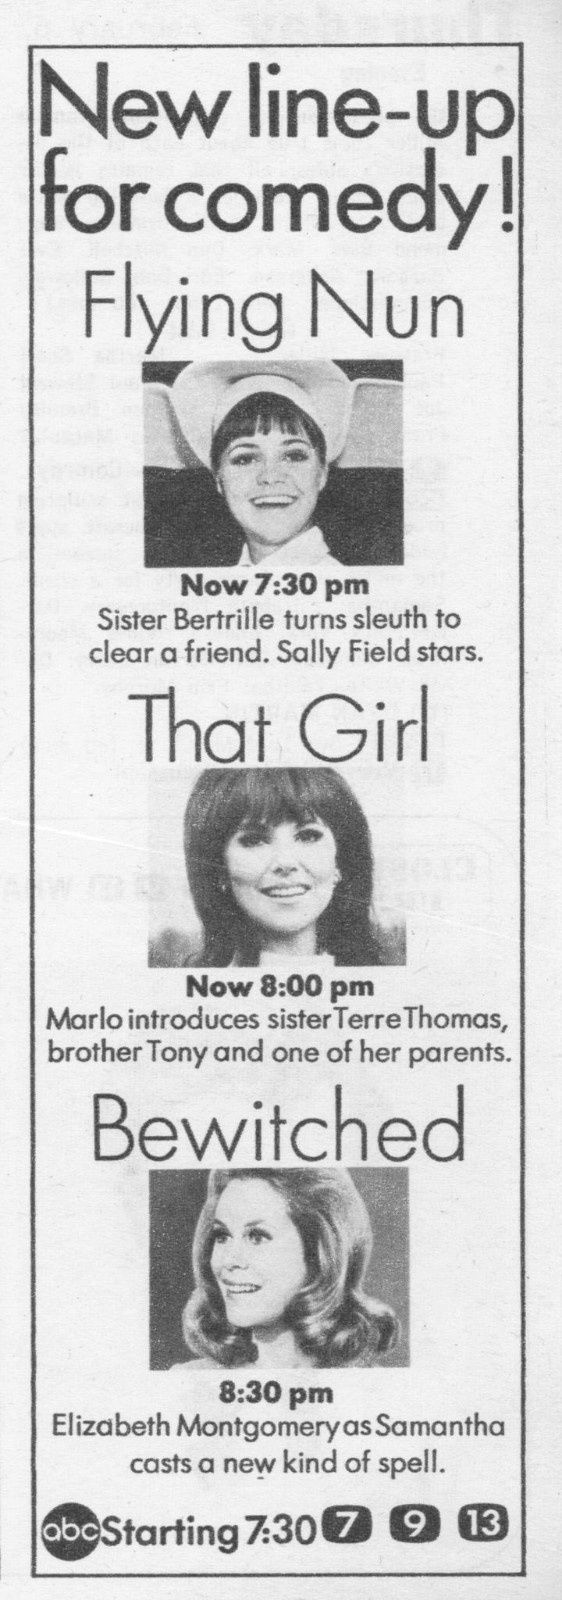 ABC TV Thursday Night Line-Up Ad Featuring: Bewitched, The Flying Nun and That Girl, 1969 - Bewitched and The Flying Nun, were produced by Screen Gems.